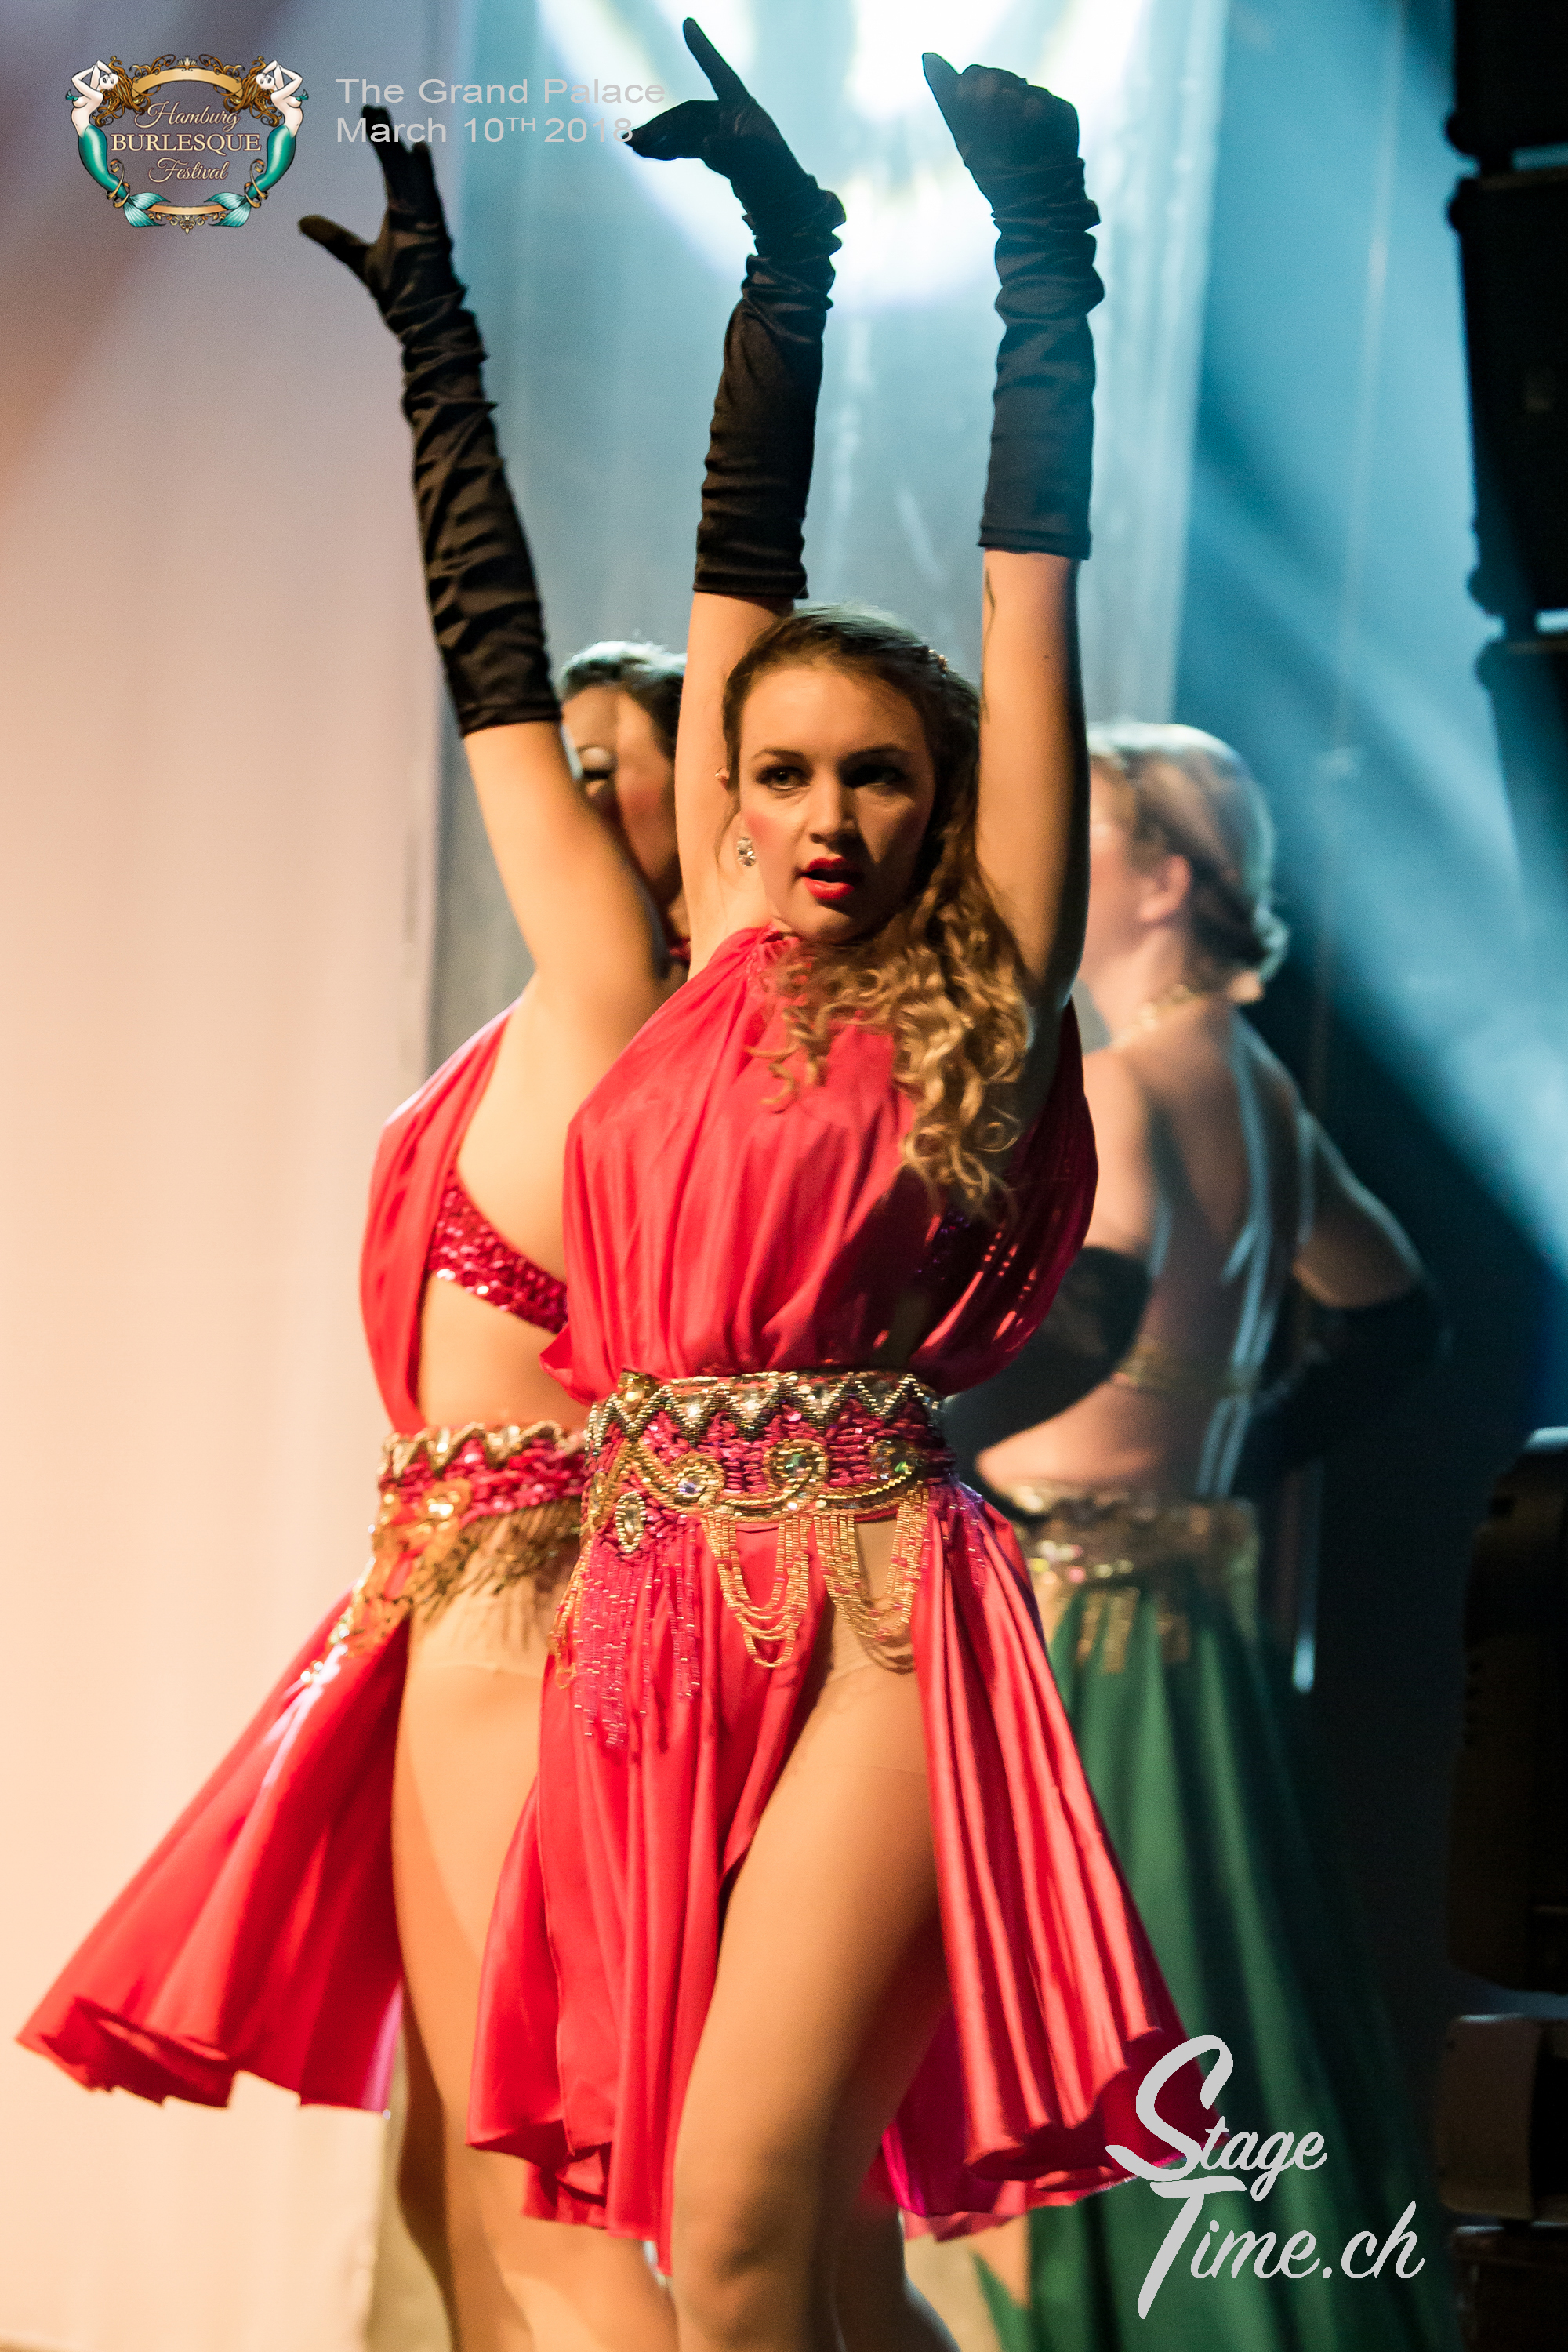 Hamburg_Burlesque_Festival_The_Grand_Palace__📷_Christoph_Gurtner_I_stagetime.ch